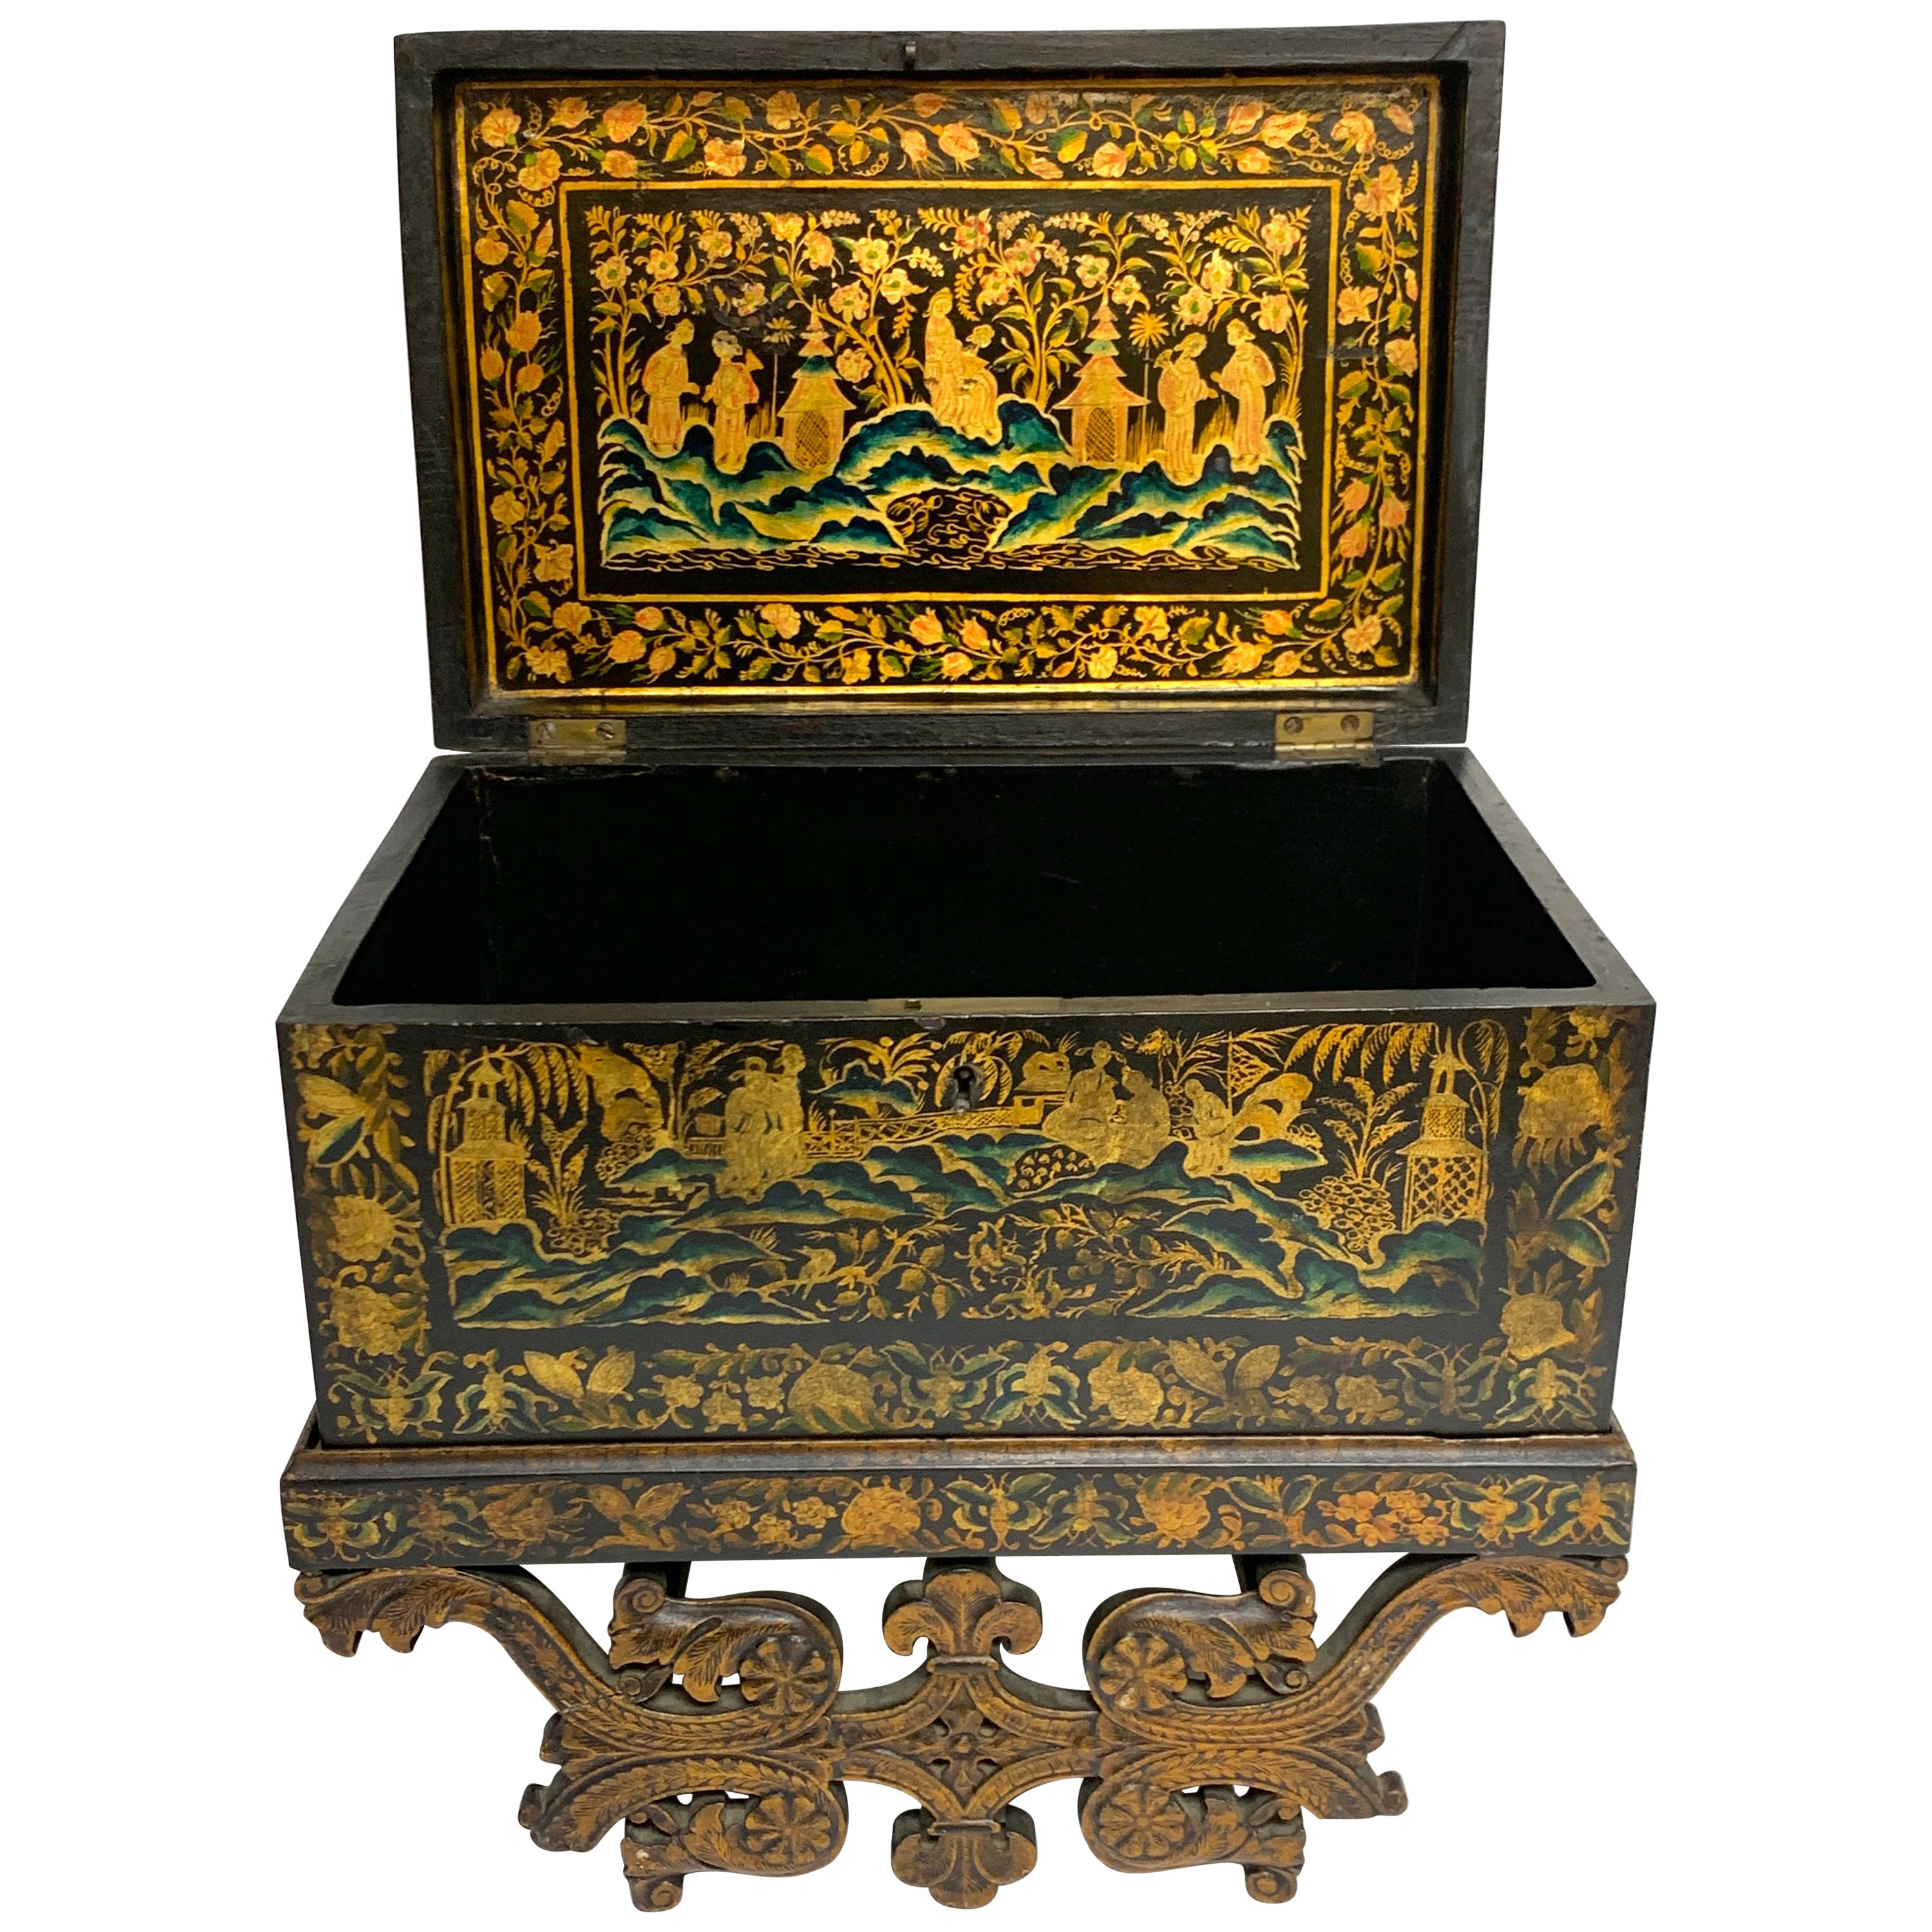 Exquisite Chinese Export Lacquer Box & Stand, circa 1820